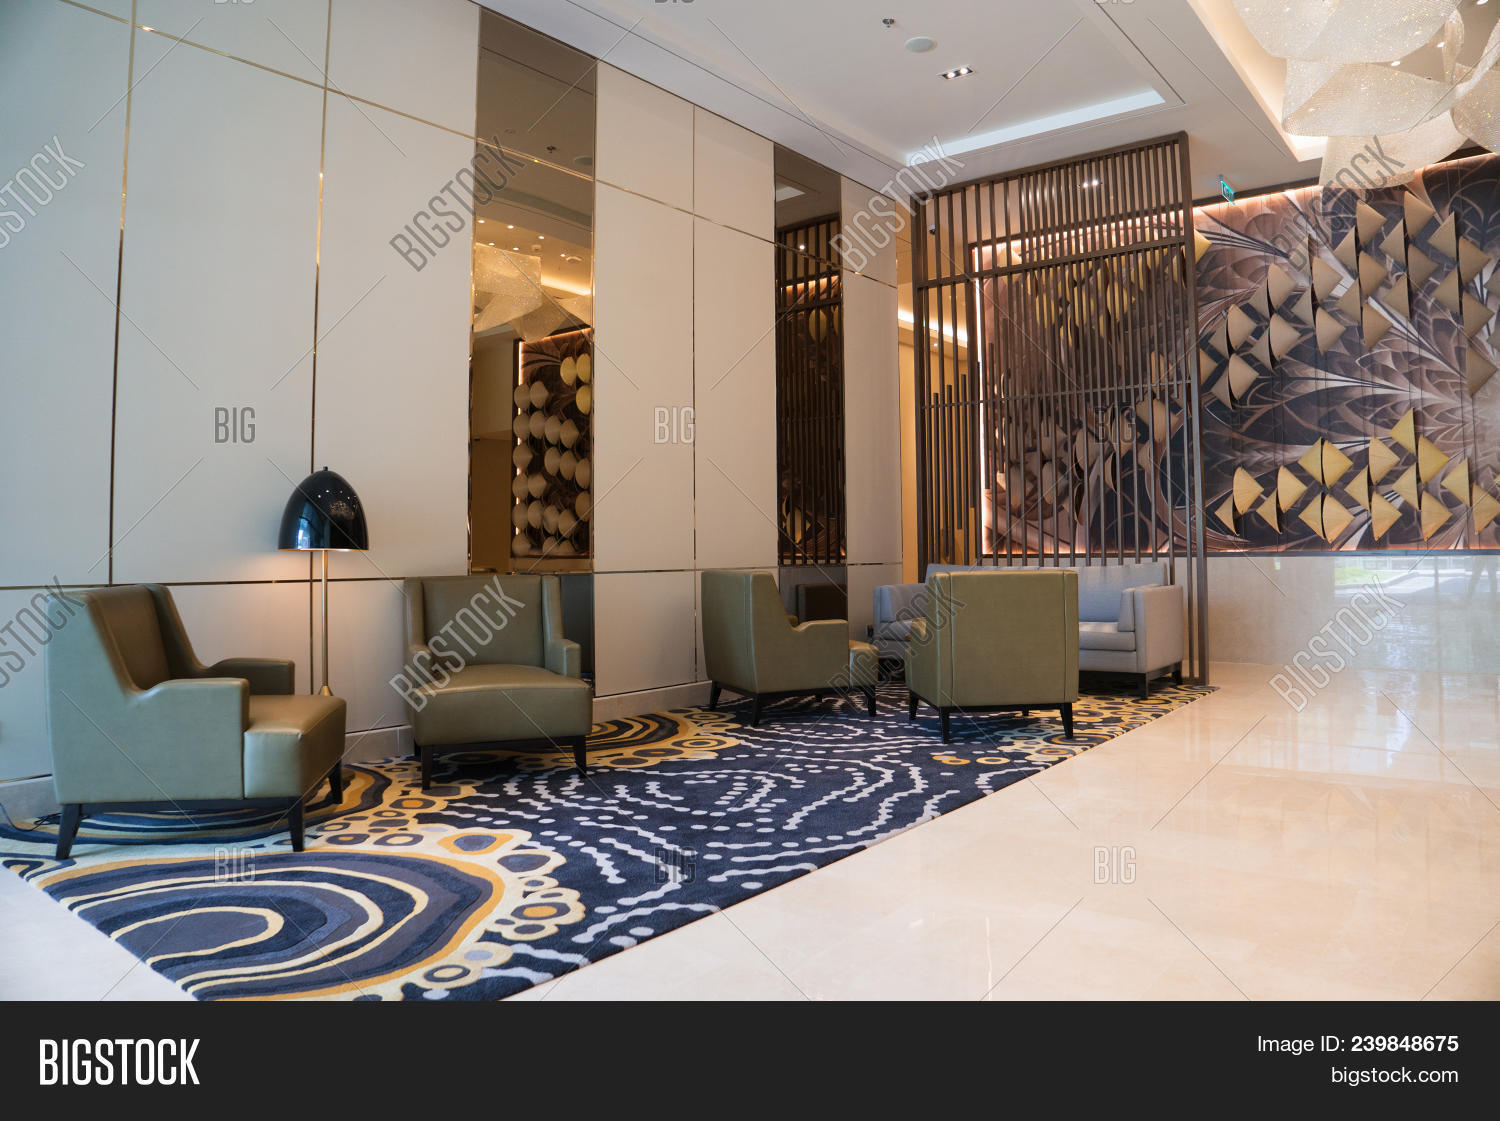 Modern Hotel Lounge Image & Photo (Free Trial) | Bigstock